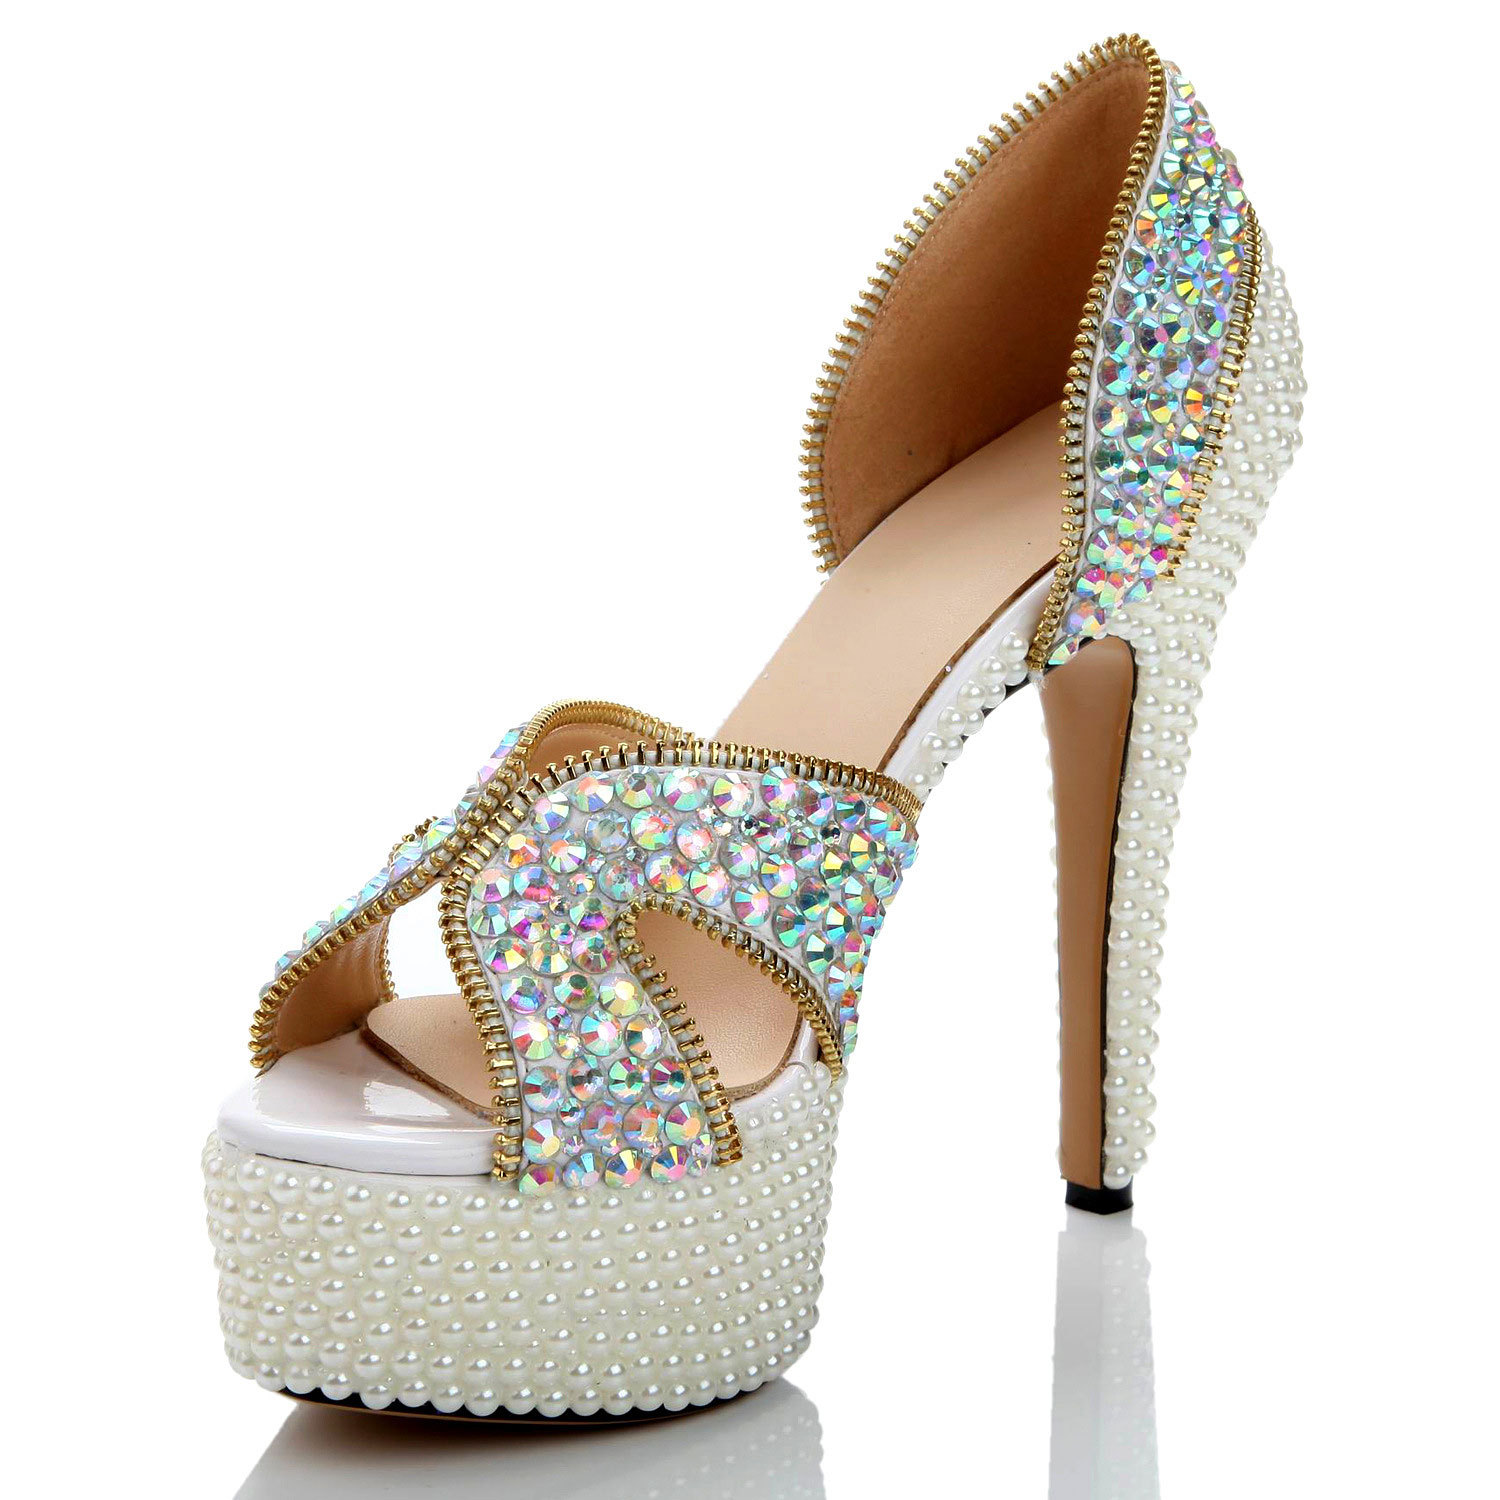 LSDN-1150 New Fashion High Heels Luxury Diamonds Pearl with Sexy Pattern Fine Heel Sandals Women Shoes